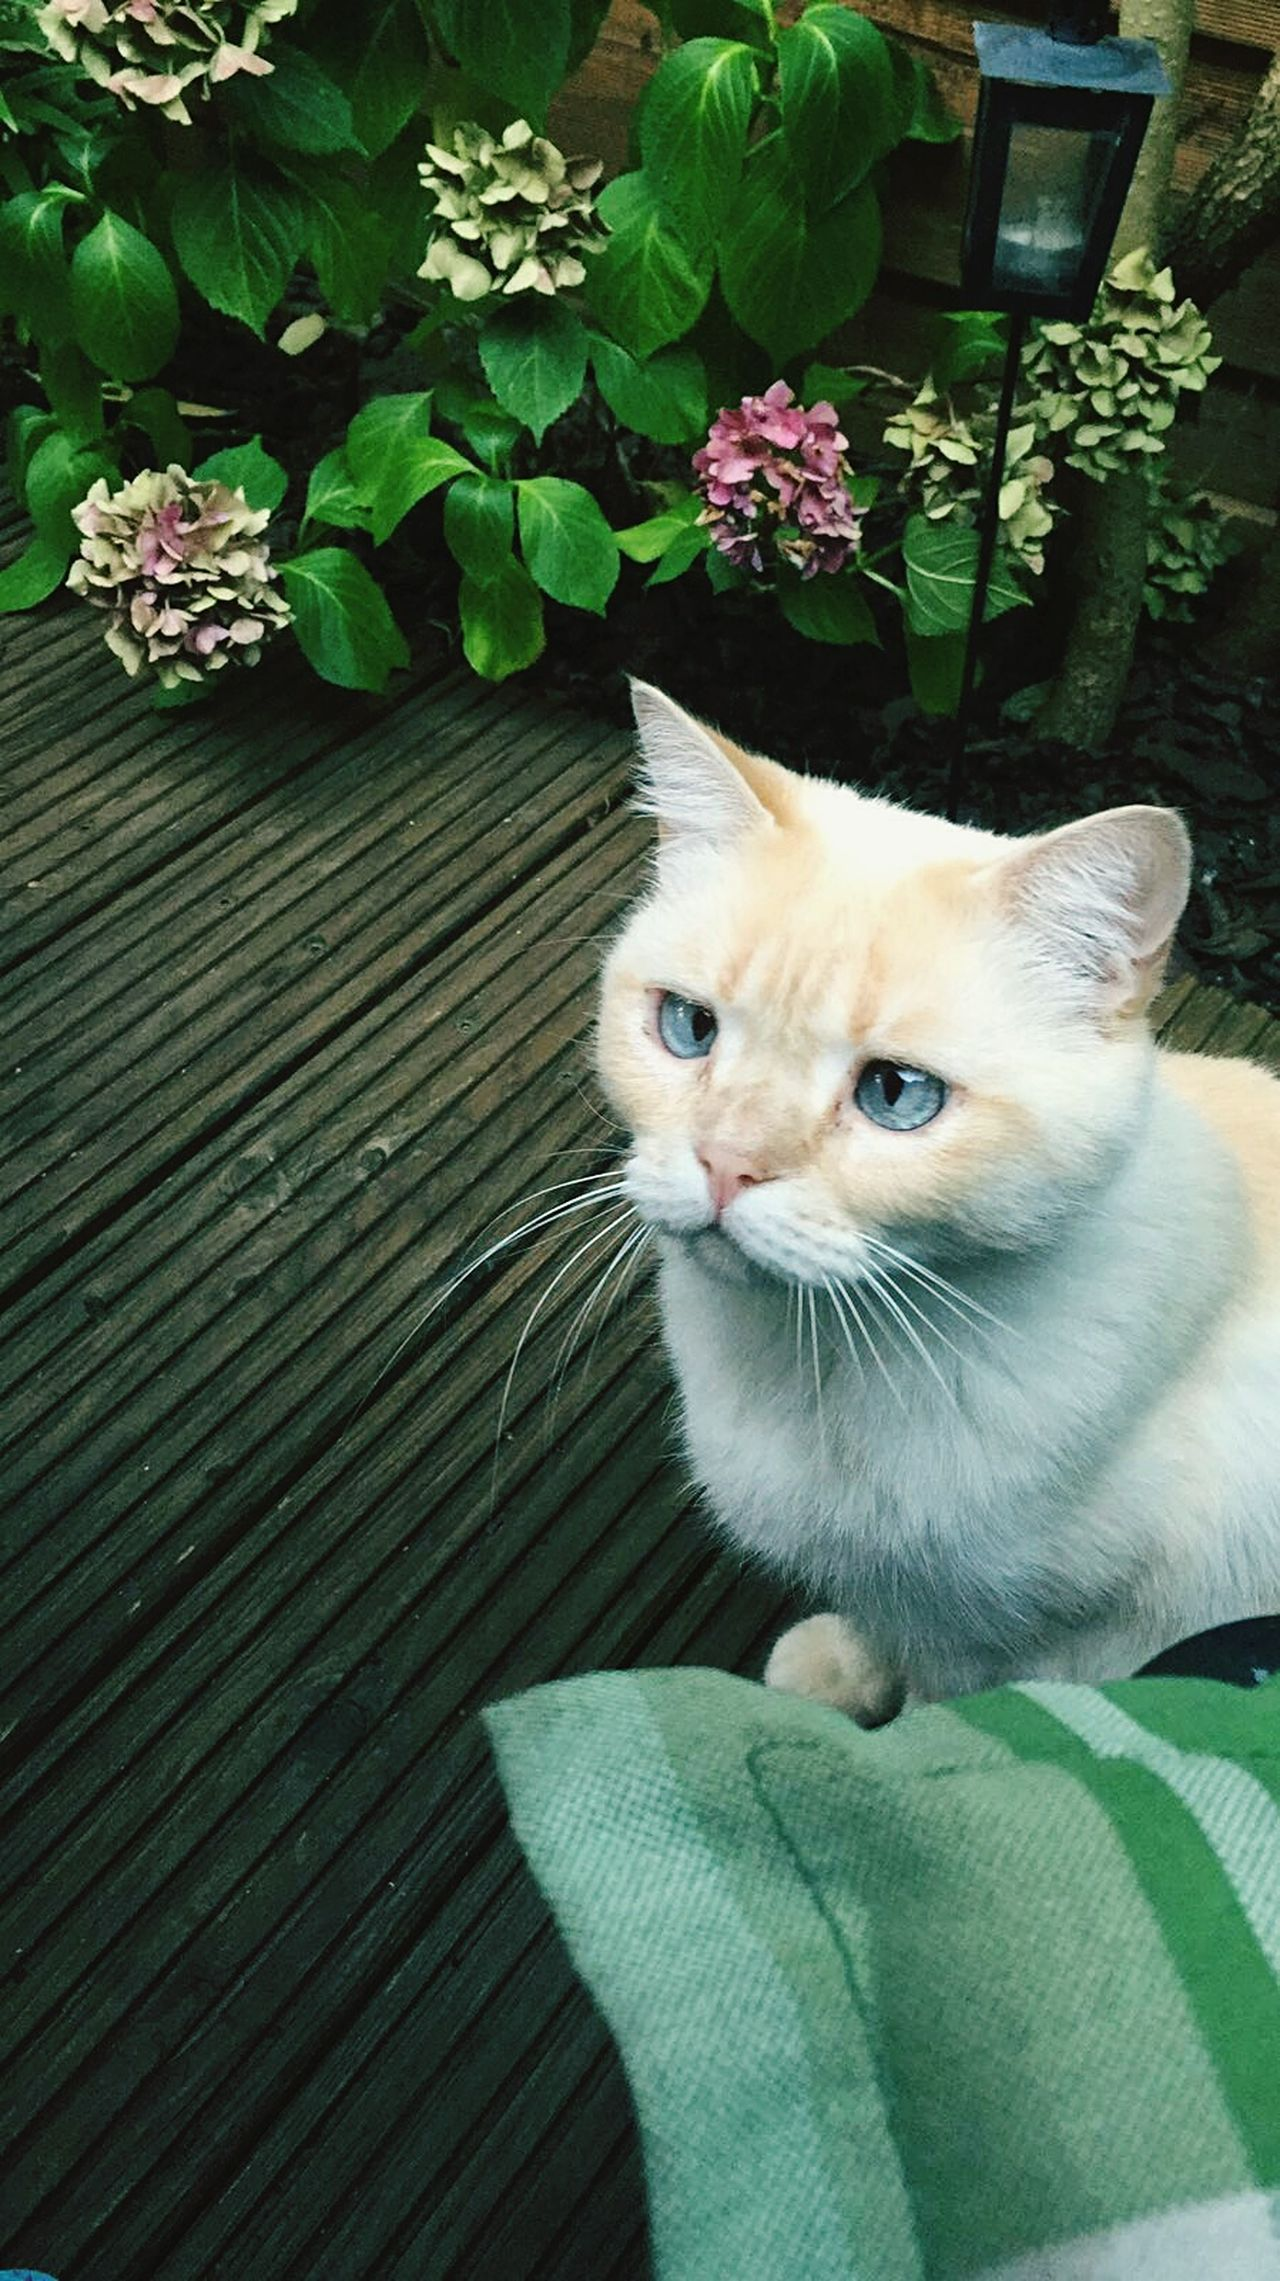 Cat Cateyes One Animal Nature Outdoors No People Cat Domestic Animals Pets Love